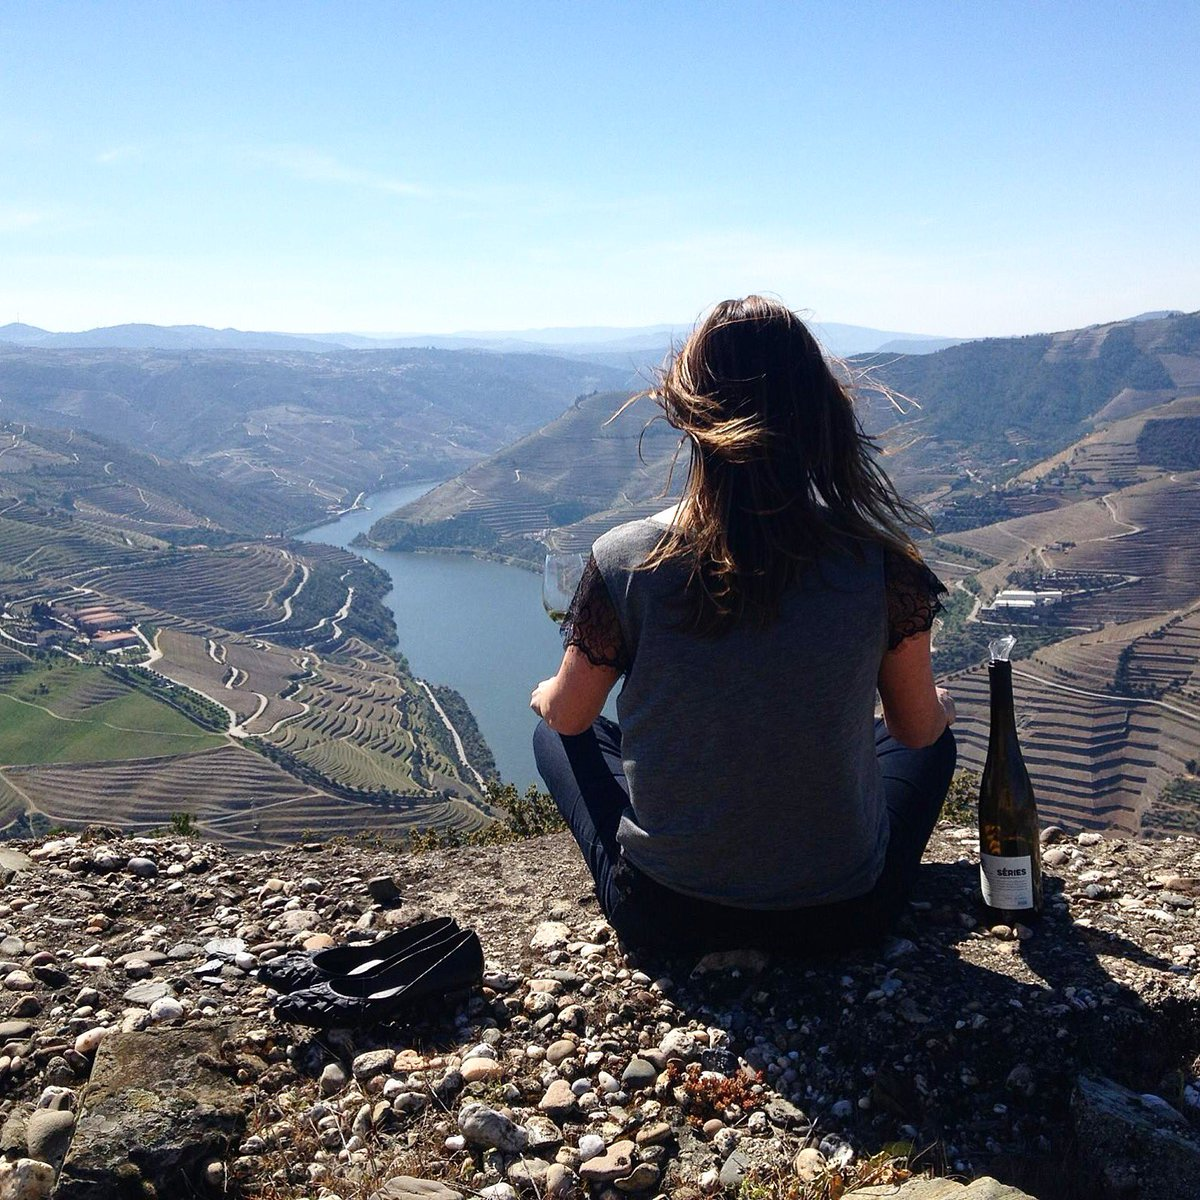 News! The 1st International #winelover Symposium will be in the #Douro in Sep 2016 (23-25)! #portugal https://t.co/M73ZnjoVuv